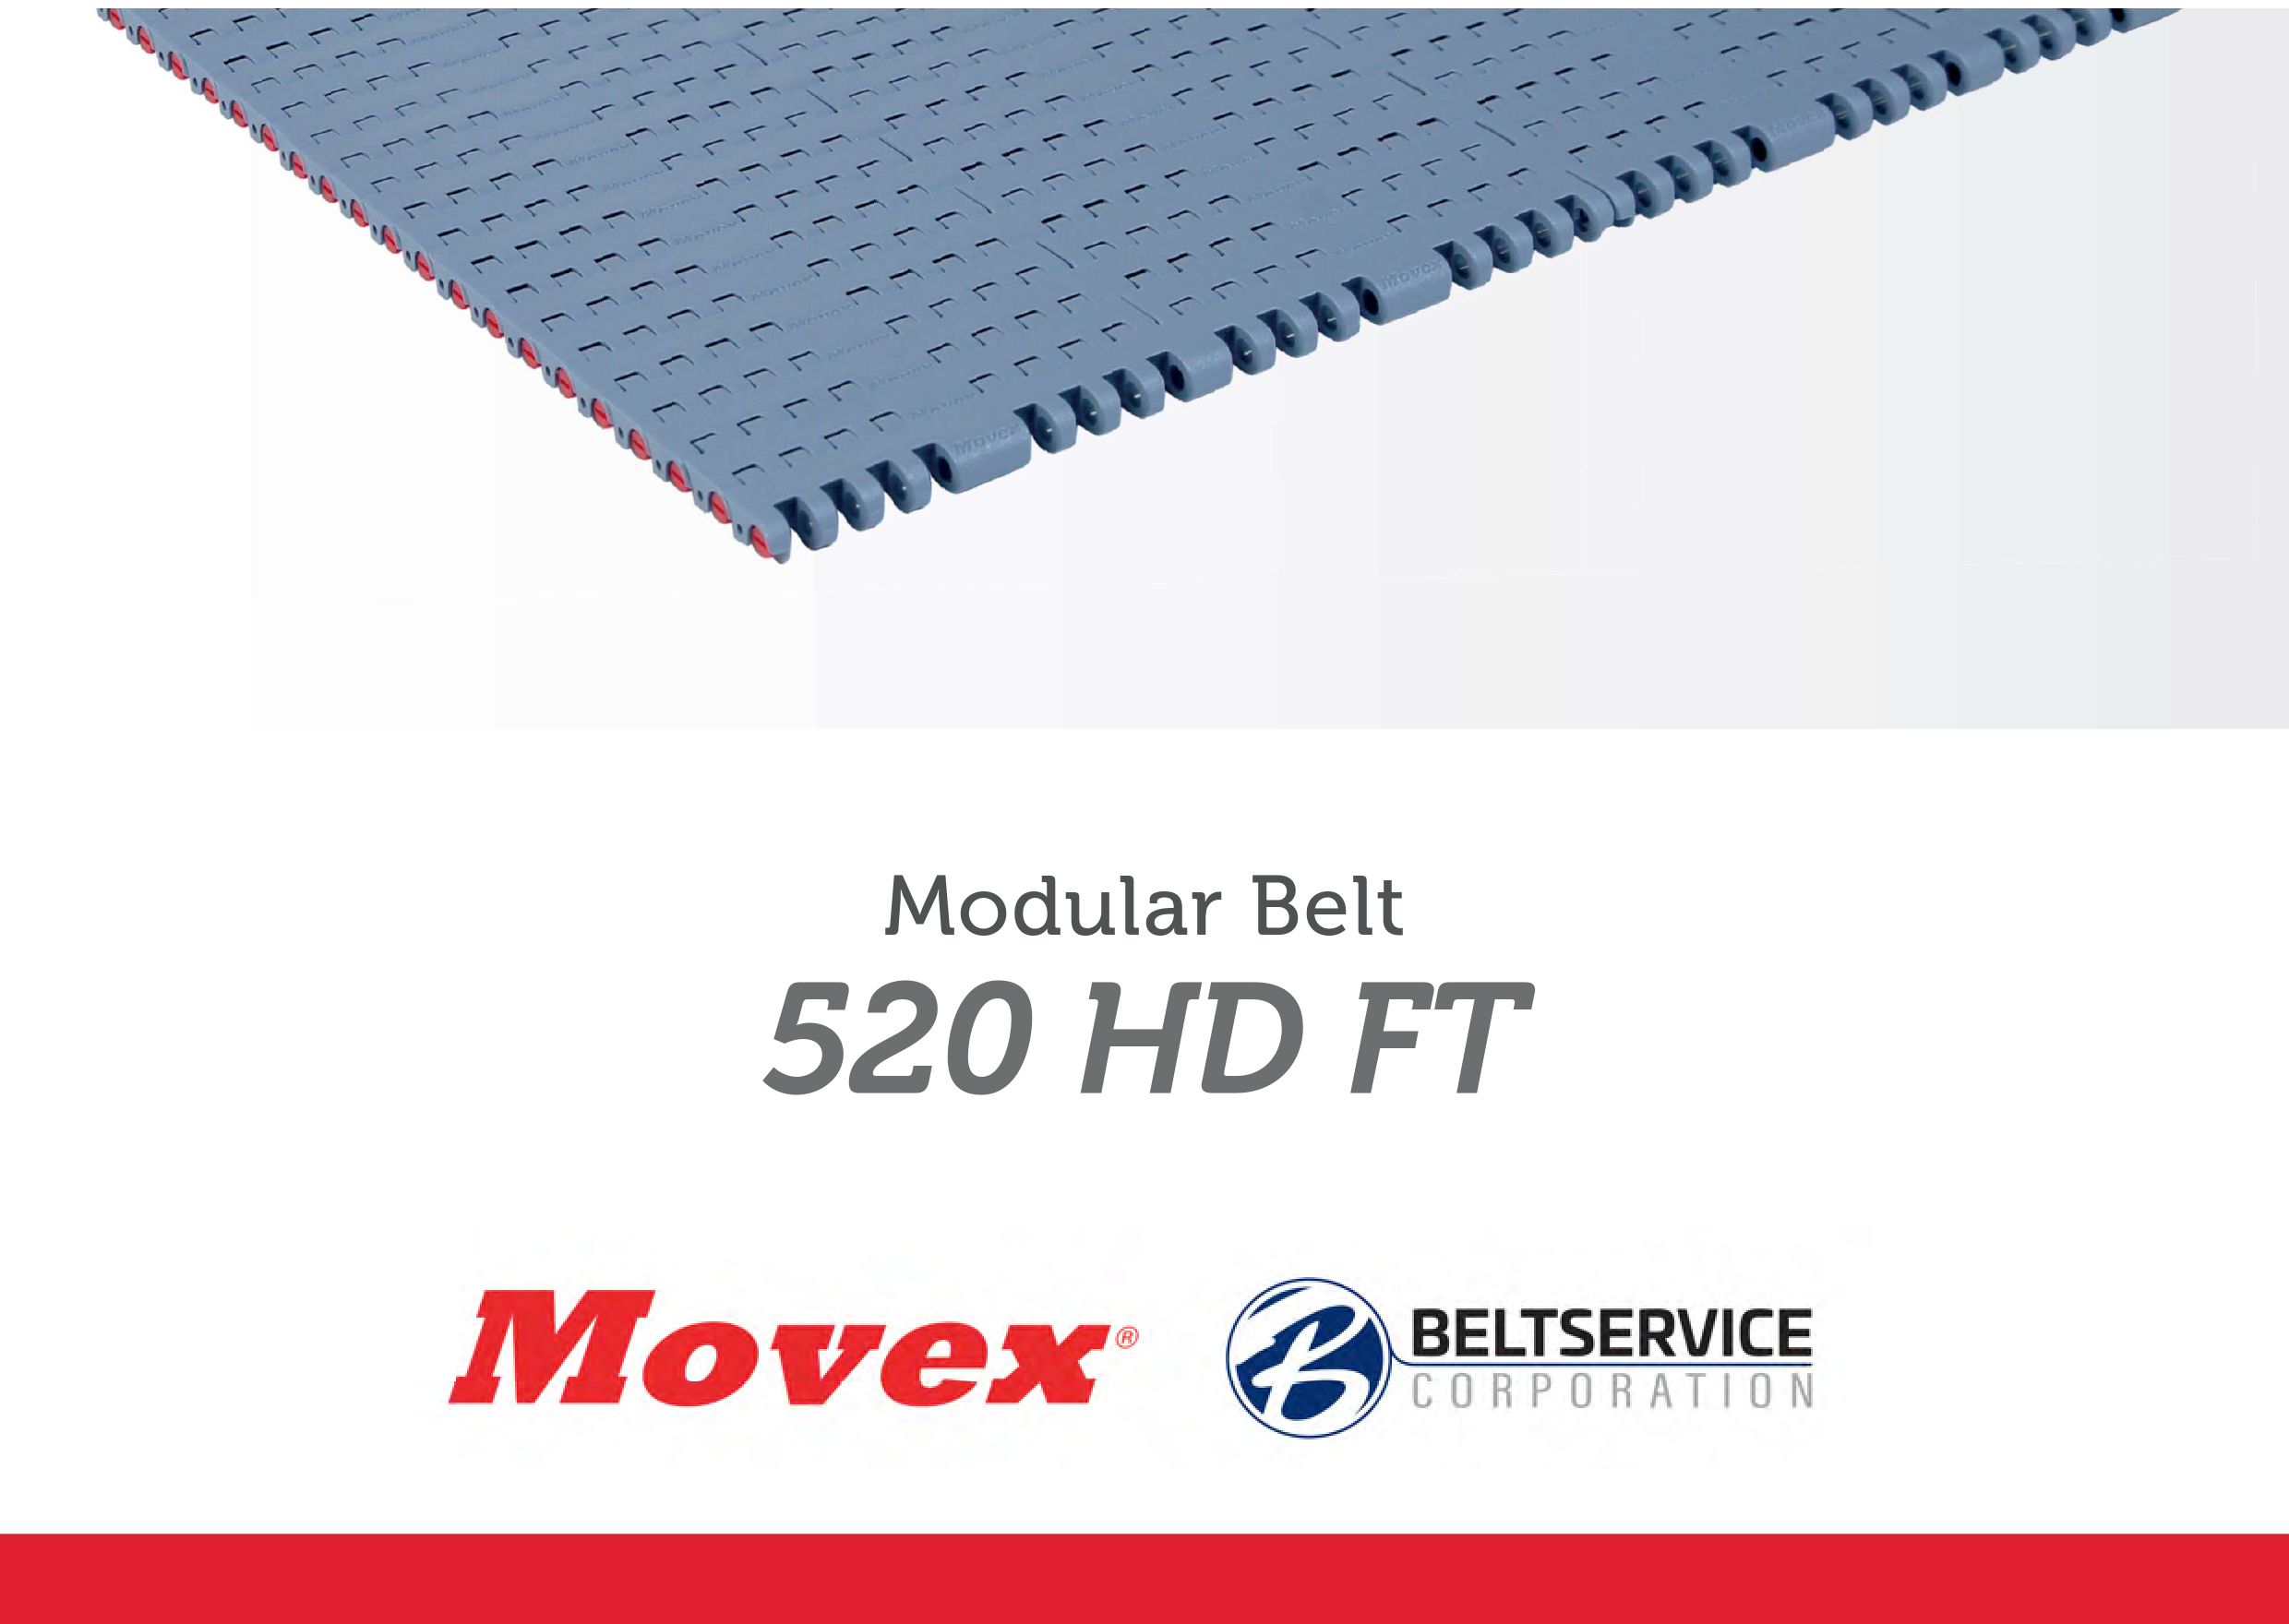 Movex - 520 HD FT